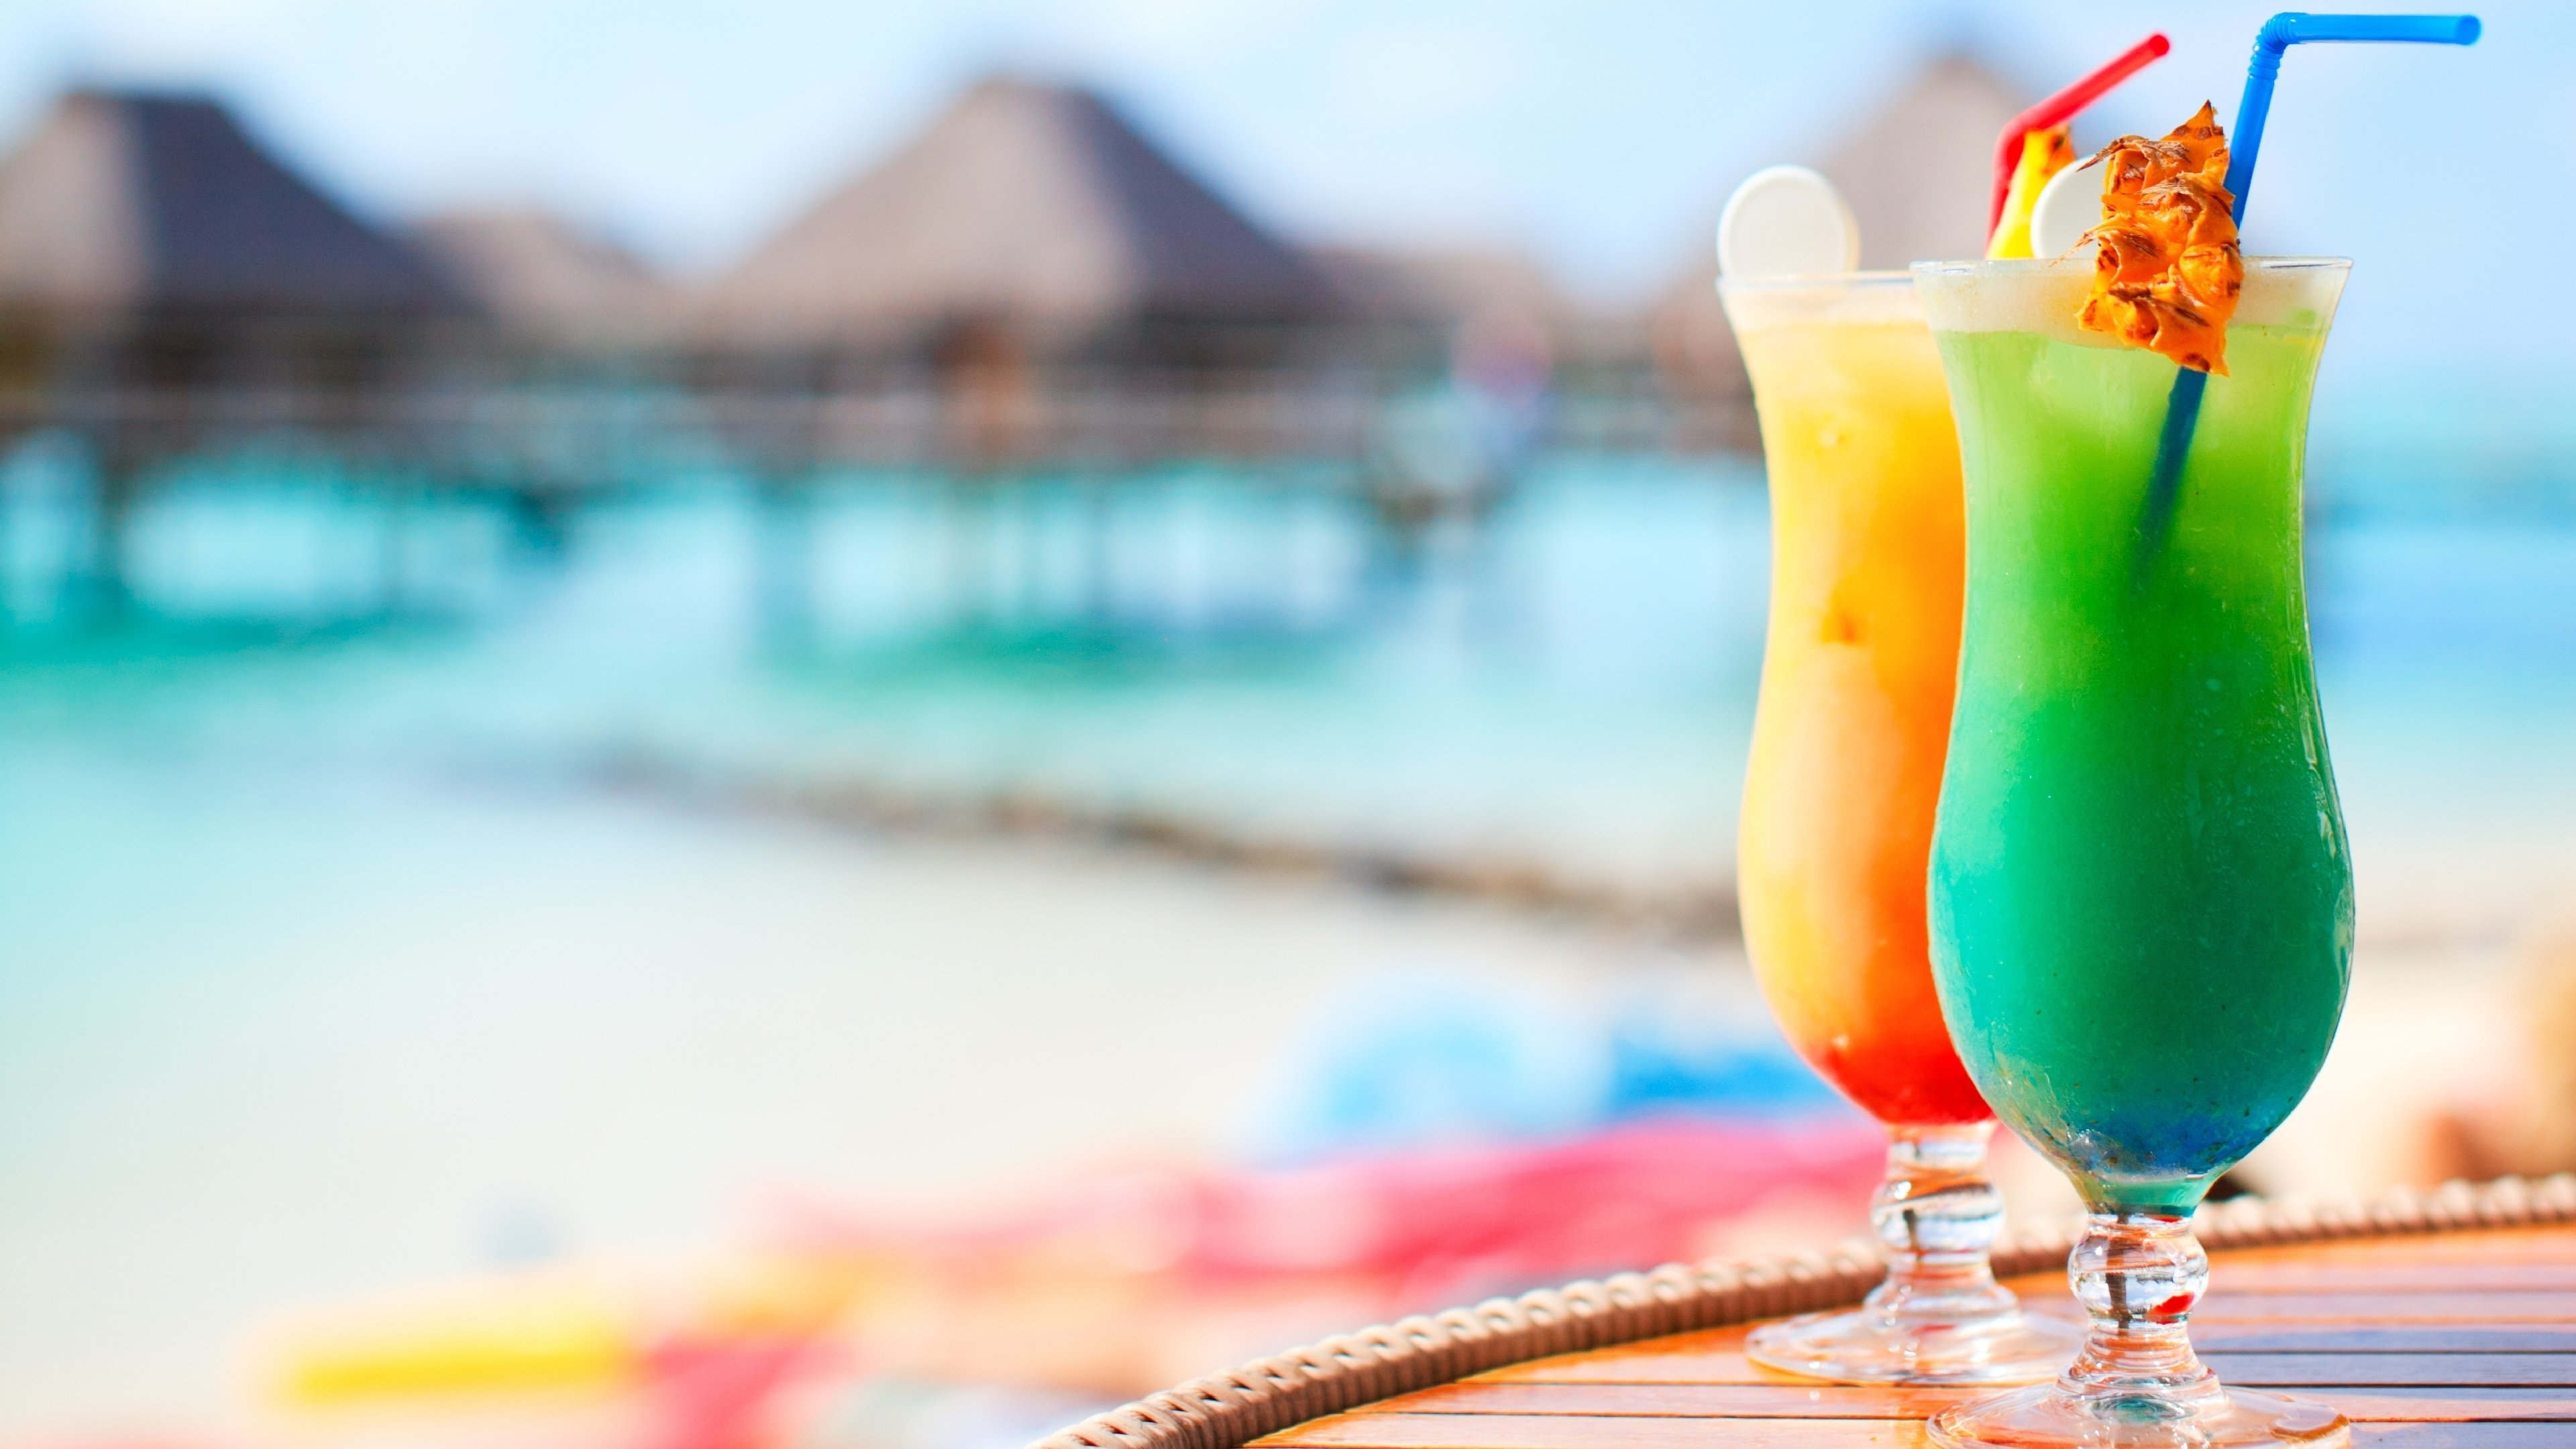 Cocktails on a beach wide screen wallpaper 1080p 2k 4k for Cocktail florida